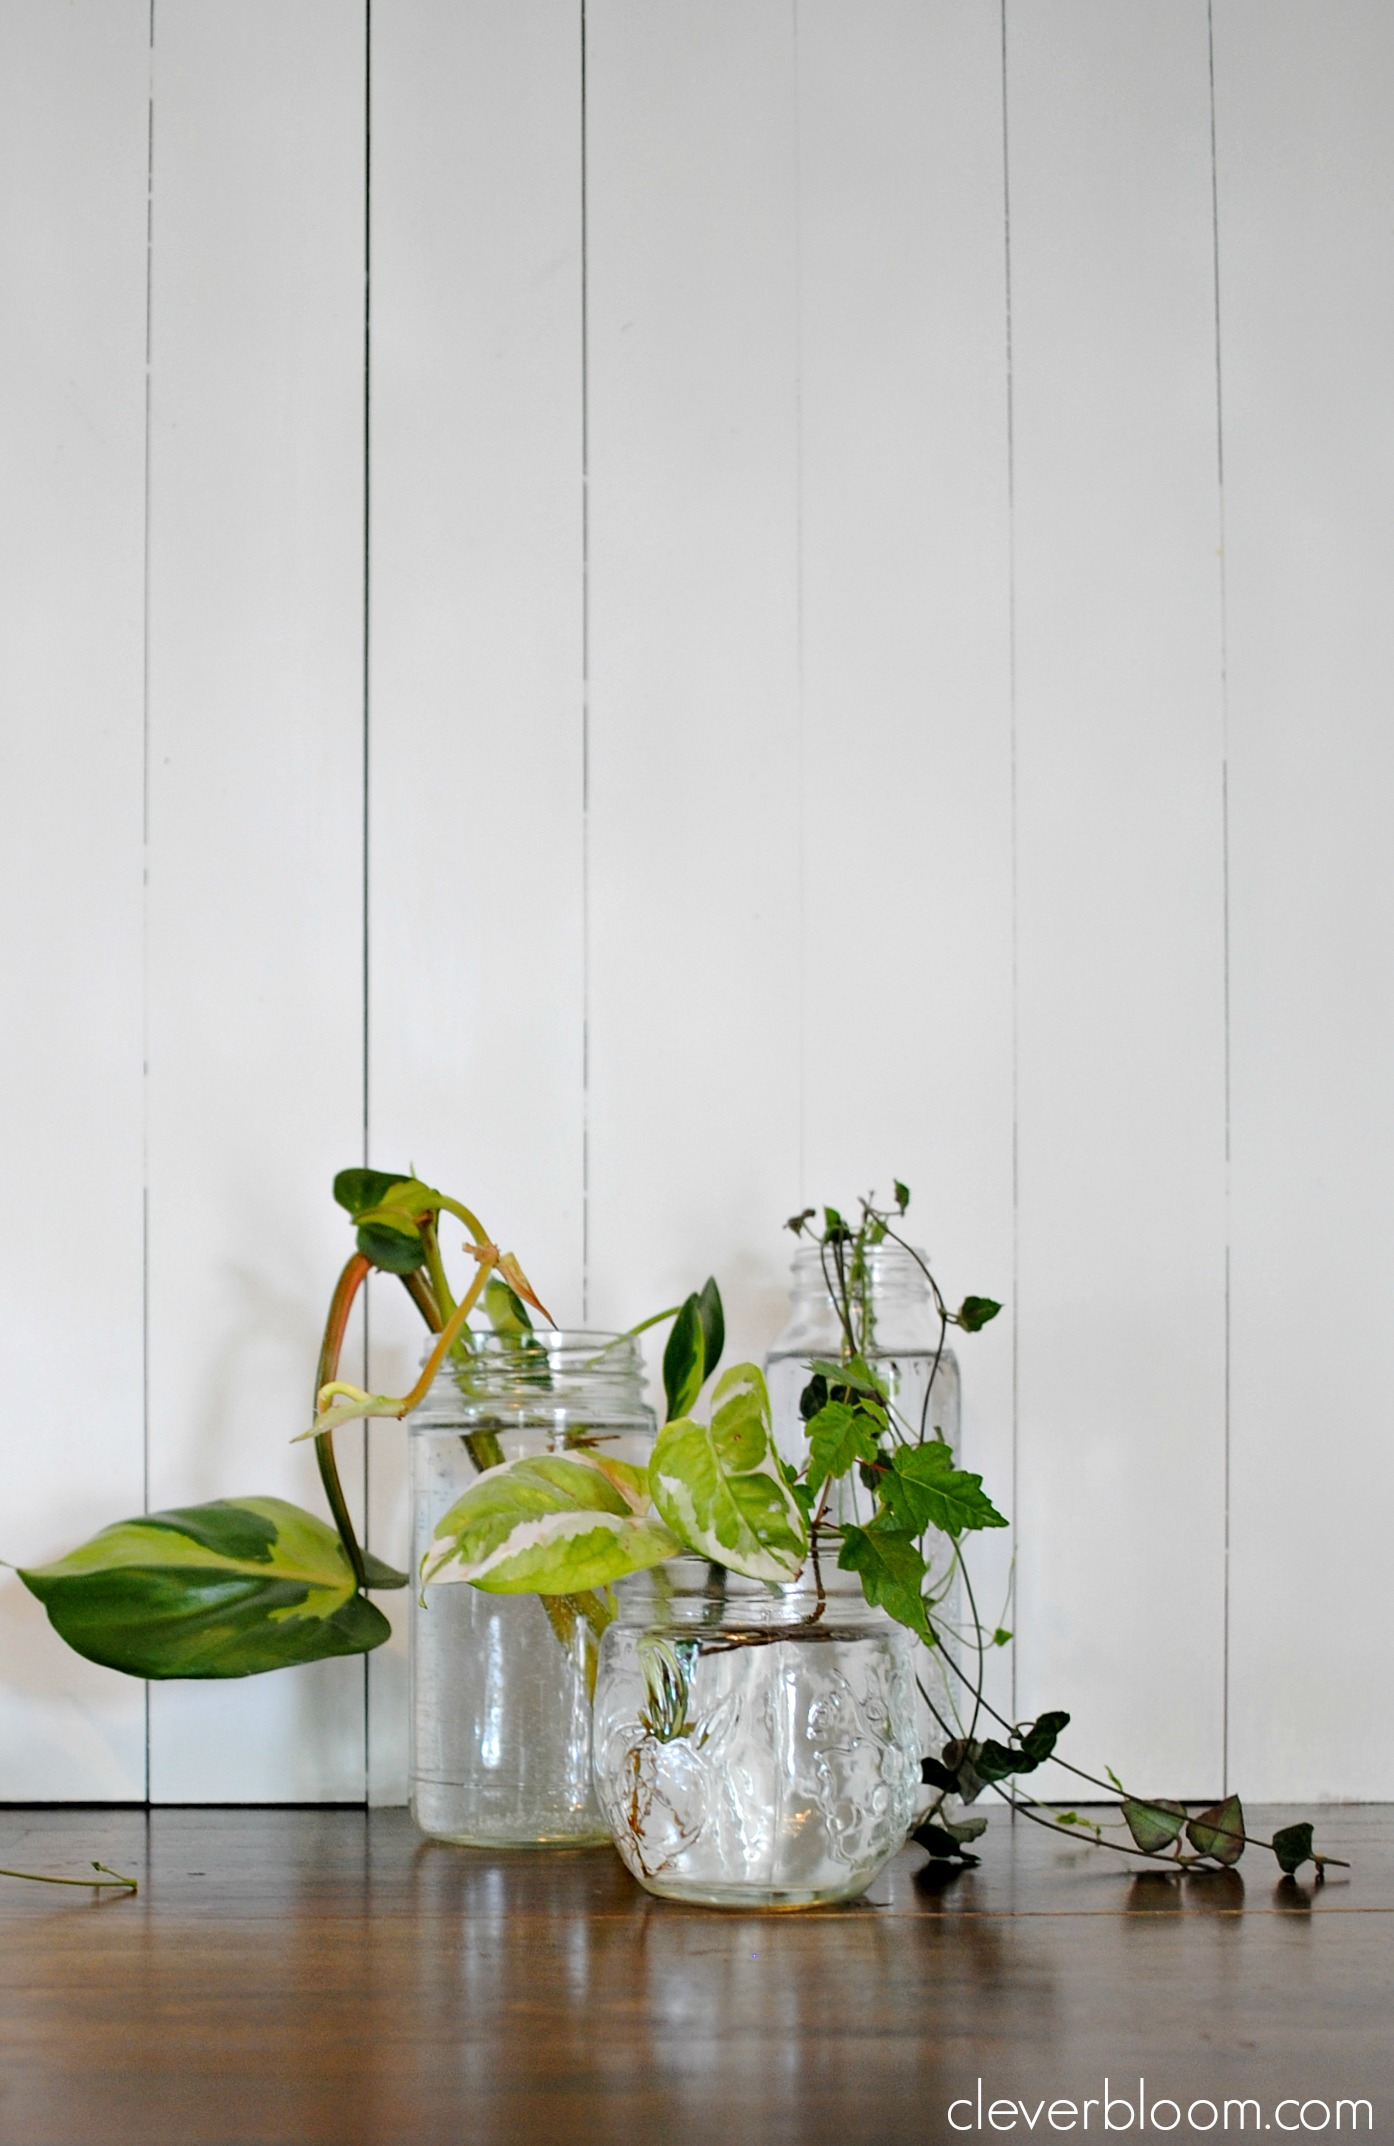 How to root plant cuttings in water clever bloom floridaeventfo Choice Image